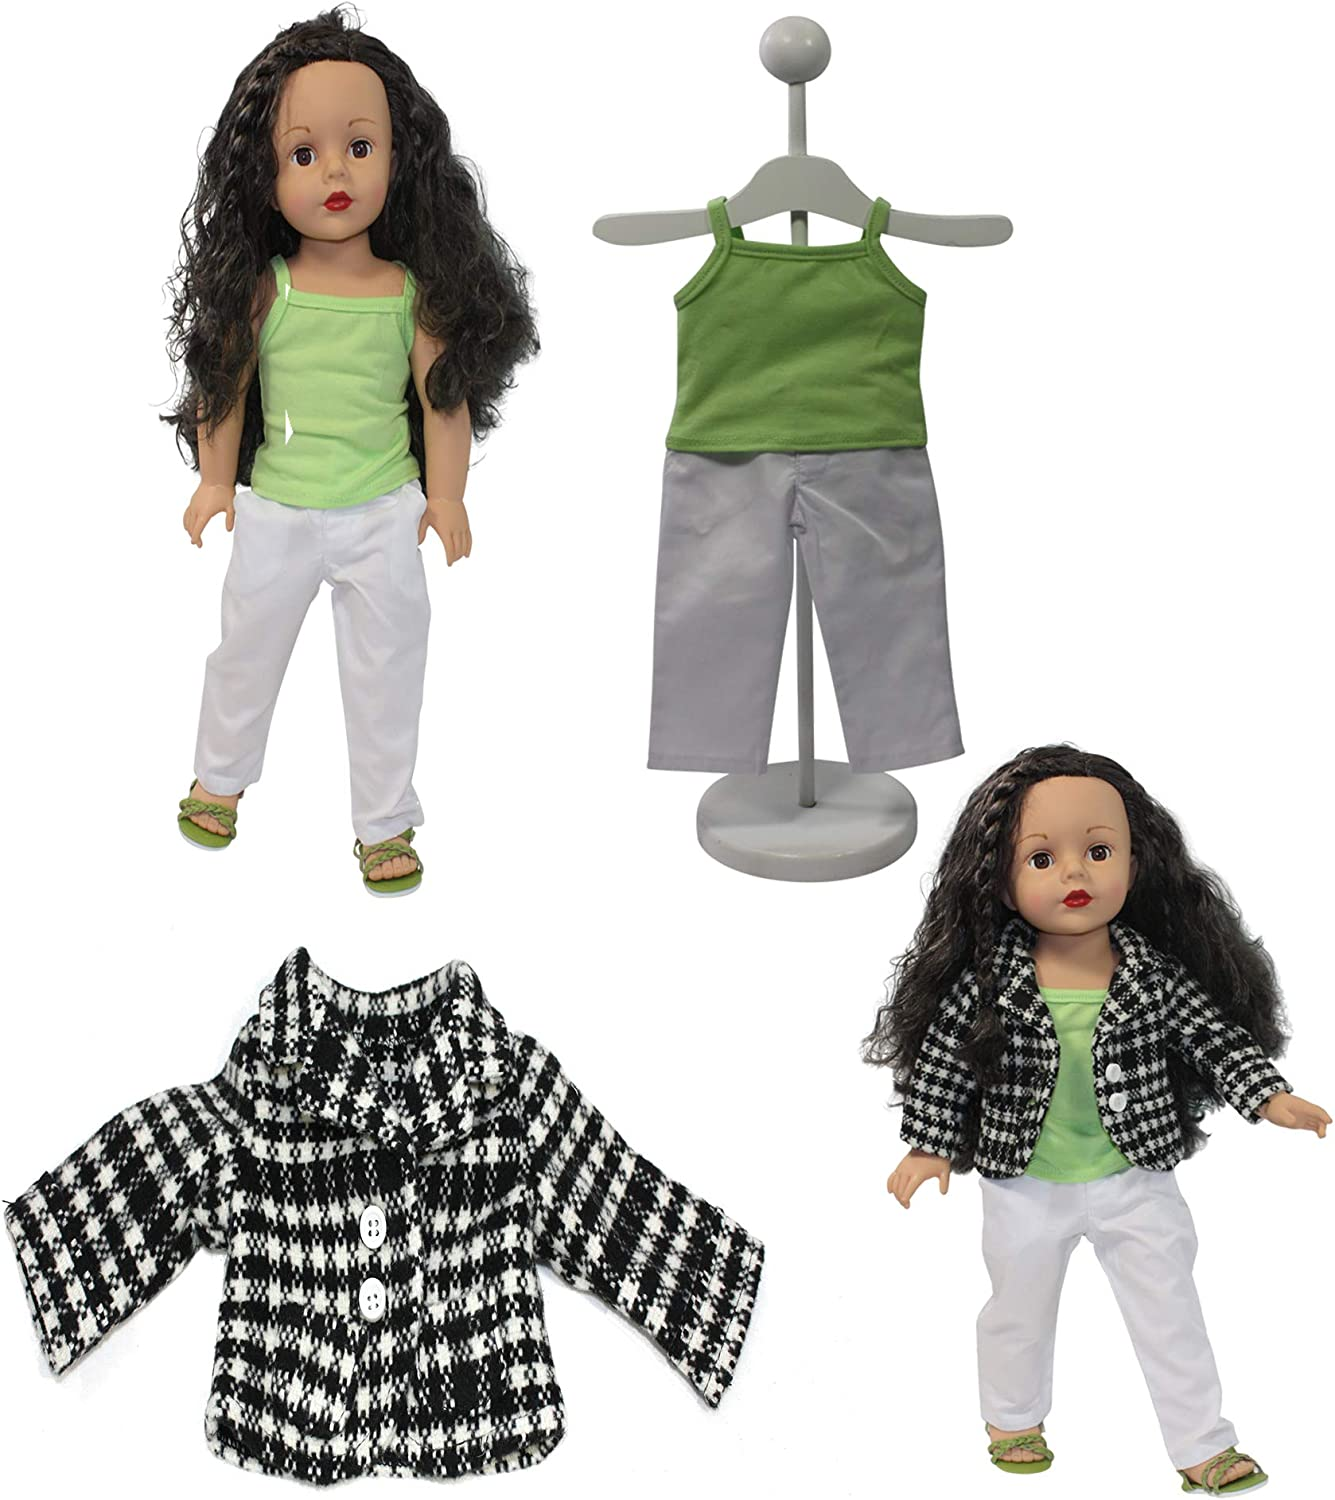 Complete Sets |18 Inch Doll Clothes Dress and Accessories for 18 Dolls Life Doll Clothes Outfits American 18 Inch Girl Doll Generation 22pcs Doll Clothes Bundle